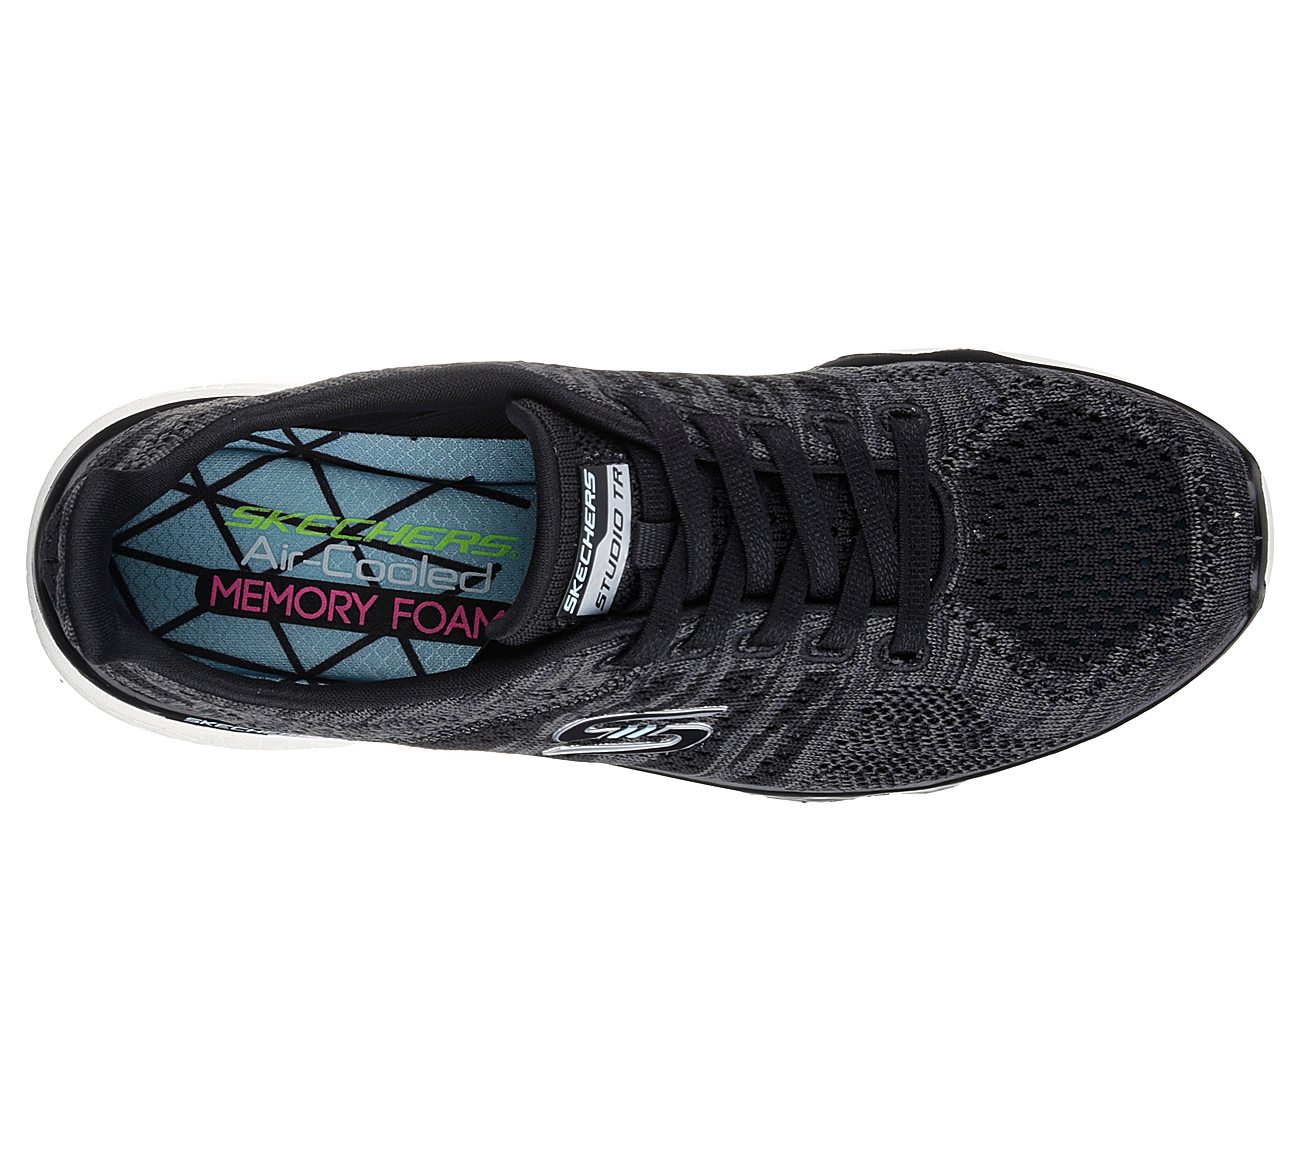 Edgy SKECHERS Sport Active Shoes